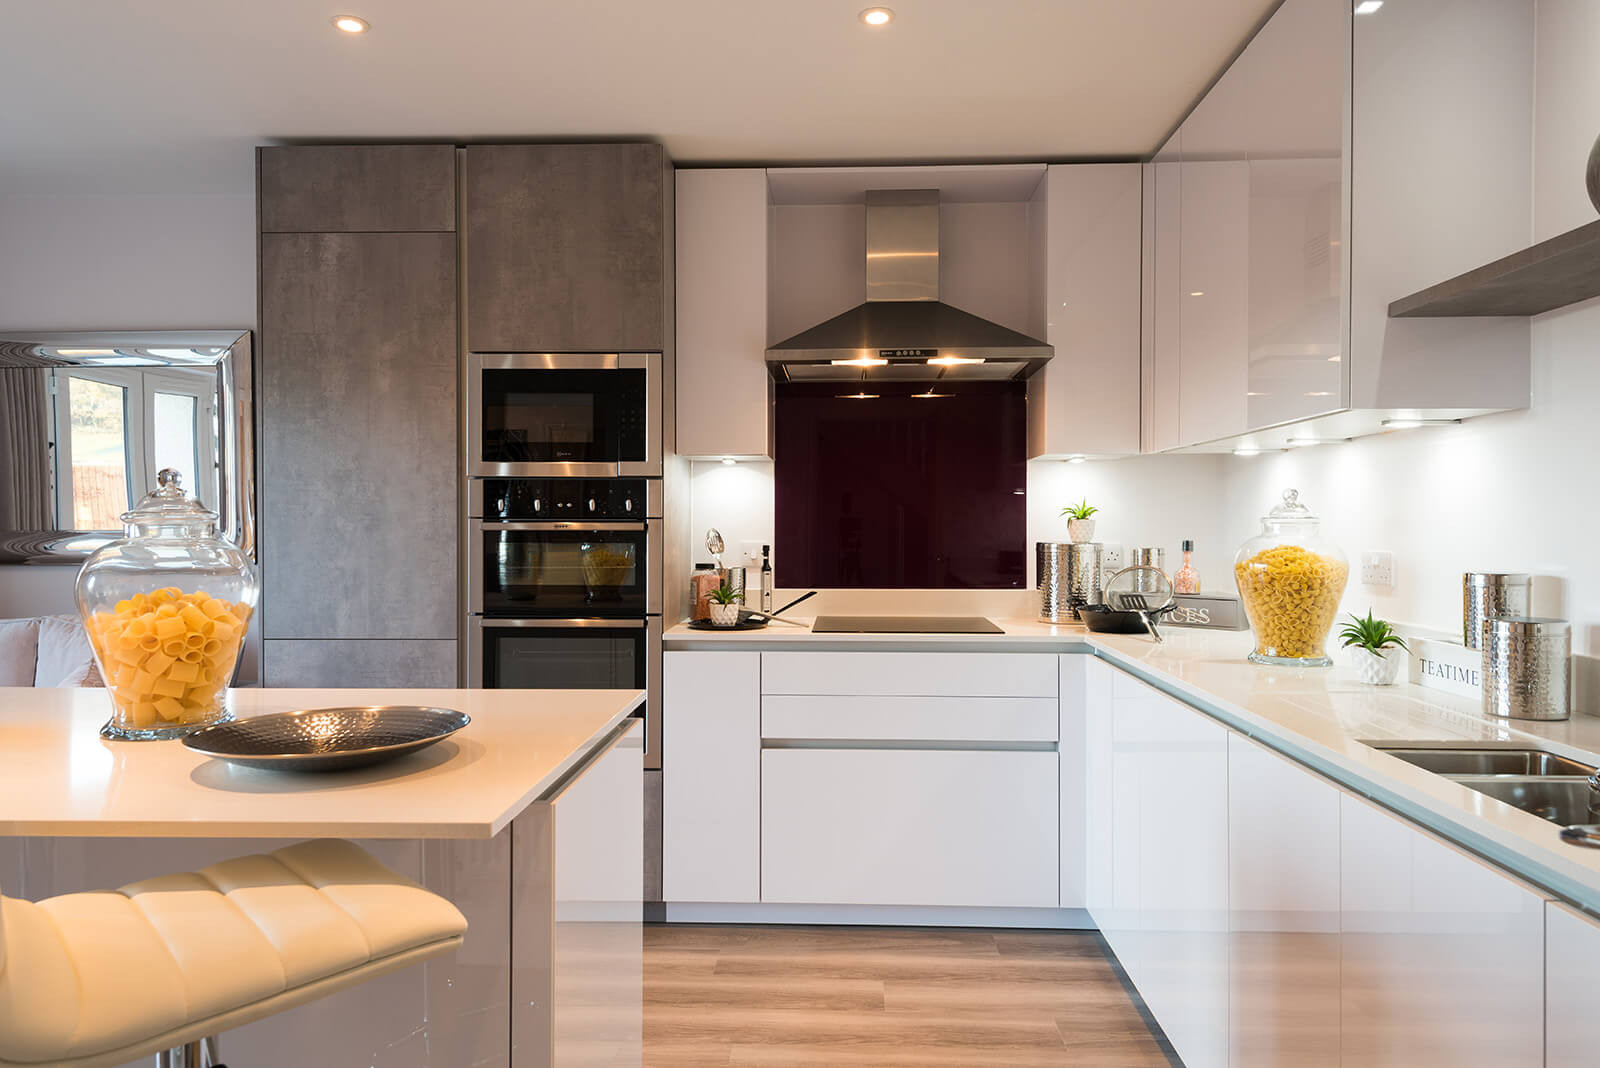 ... Space Or A Welcoming Family Environment, Oakmere Will Promise To  Deliver You Your Own Little Piece Of Heaven With A Kitchen Chosen And  Designed By You.